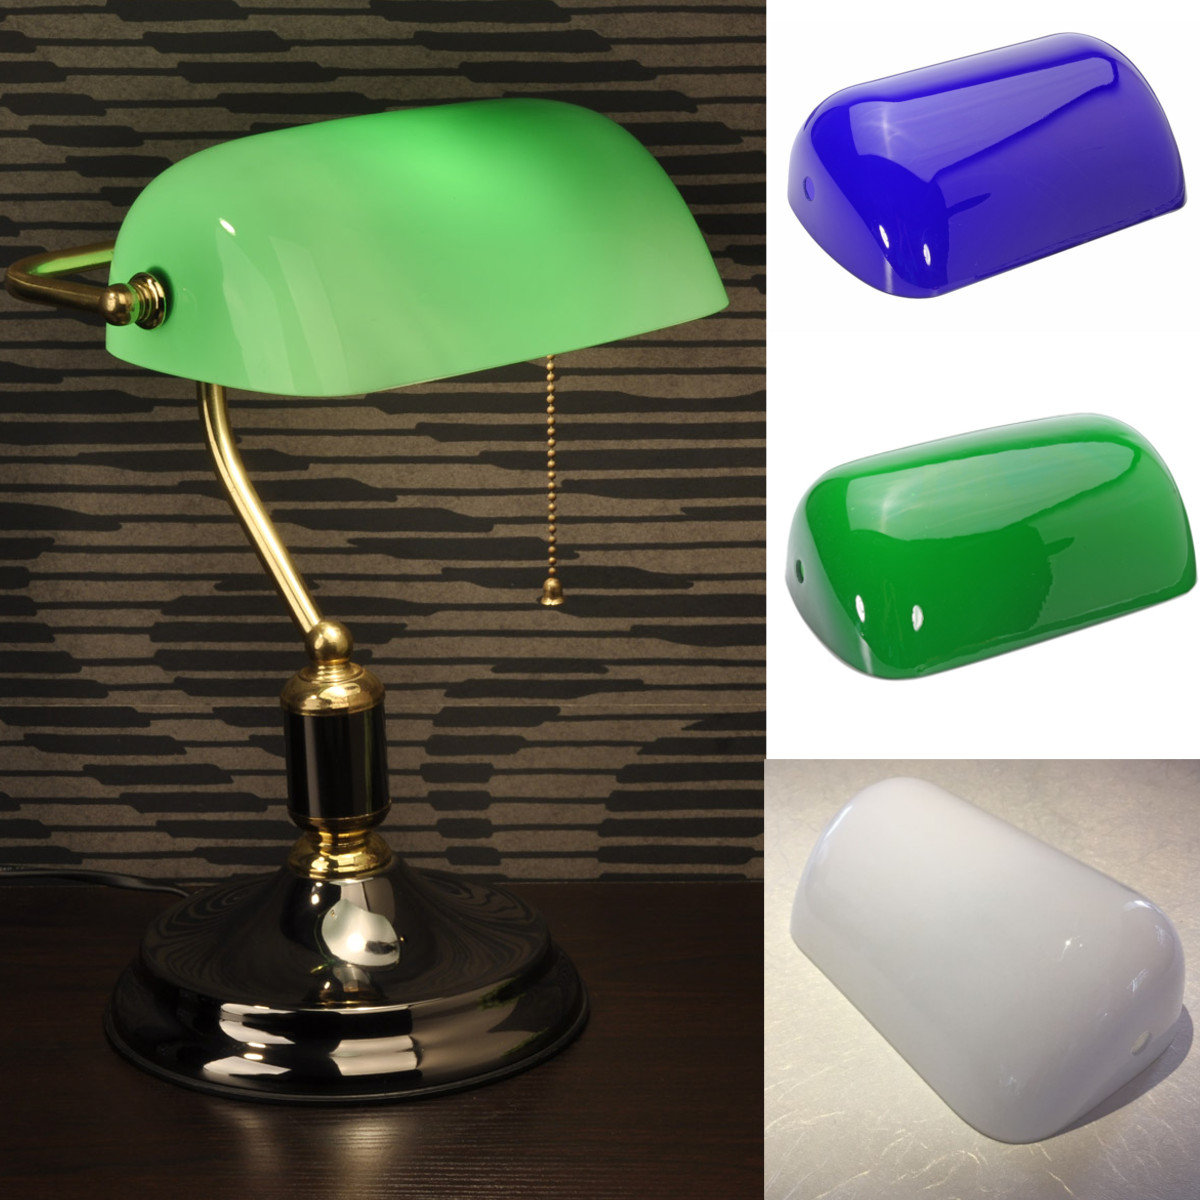 Glass banker lamp shade cover cased replacement lampshade 9 x 5 1 glass banker lamp shade cover cased replacement lampshade 9 aloadofball Choice Image